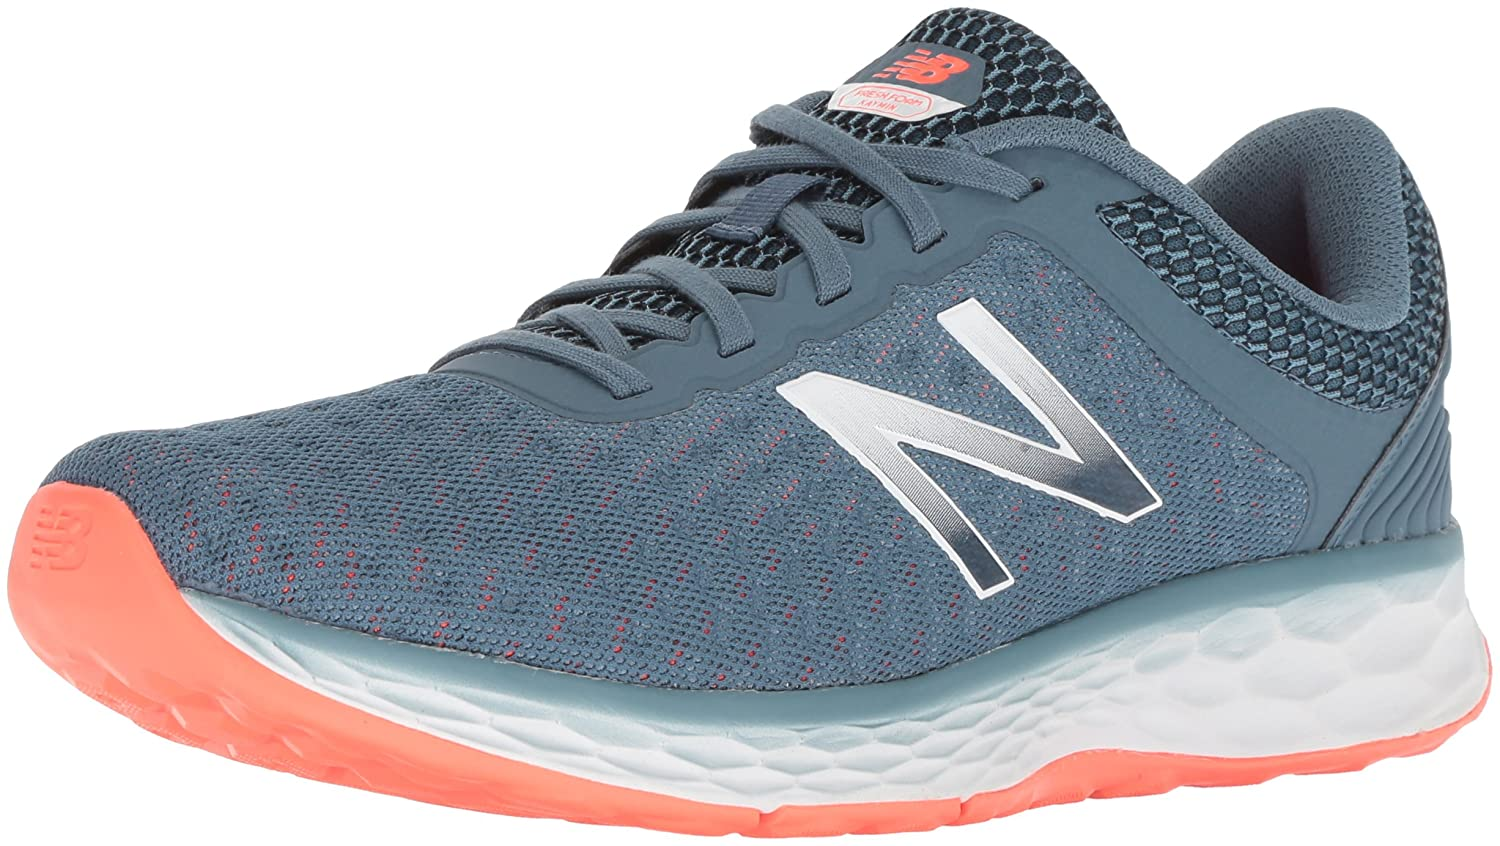 New Balance Women's Kaymin Trail v1 Fresh Foam Trail Running Shoe B075R7CFRW 9.5 D US|Light Petrol